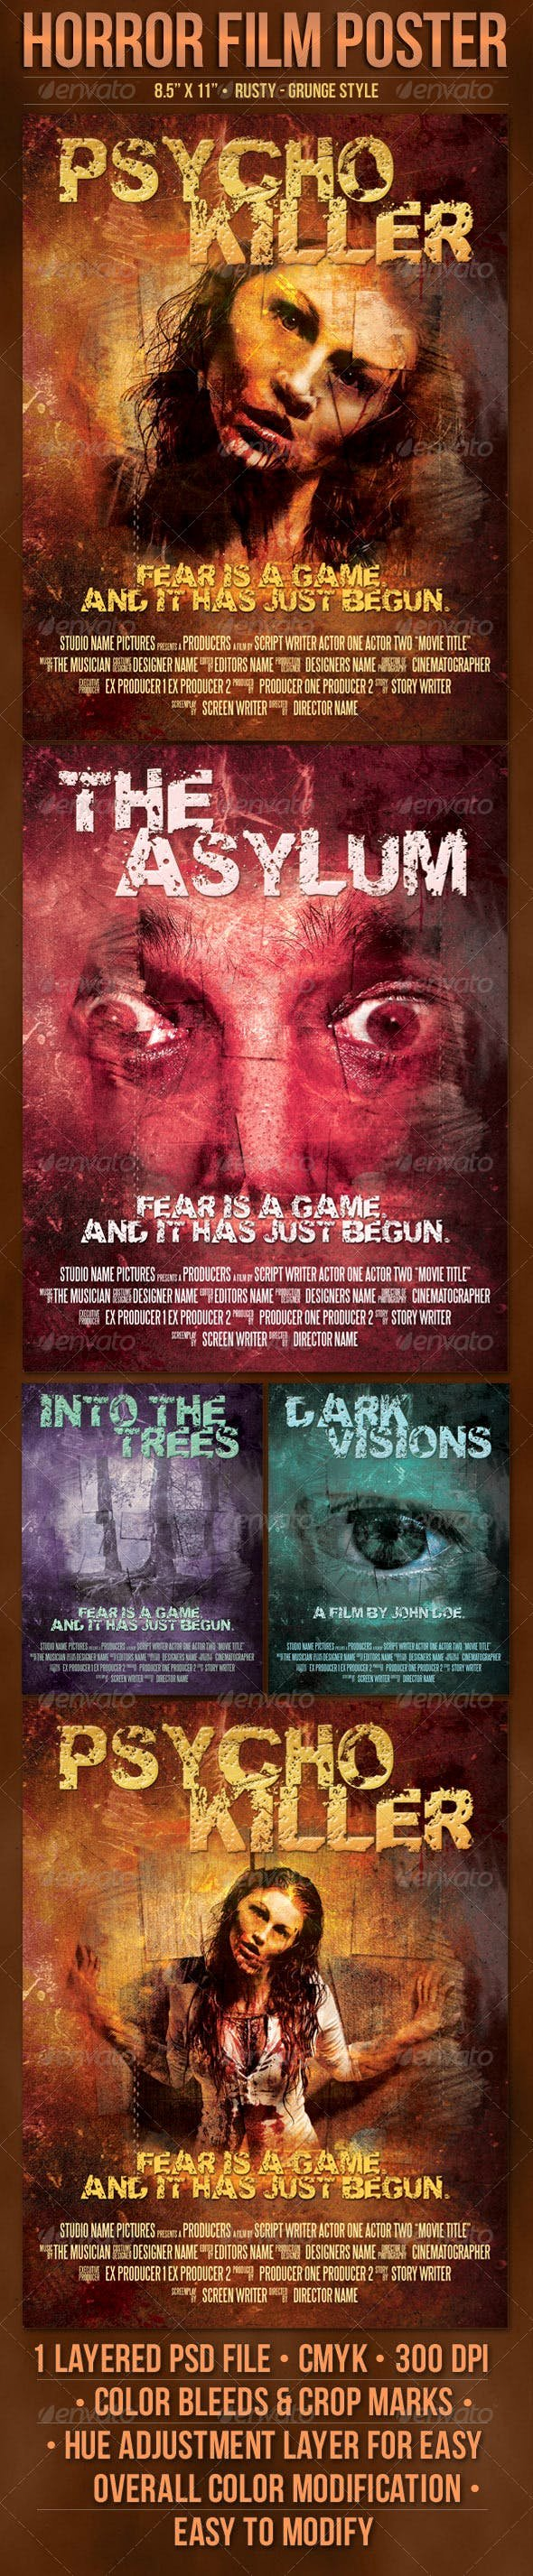 Horror Movie Poster Template Lovely Psycho Horror Poster Template by Doppelgangers